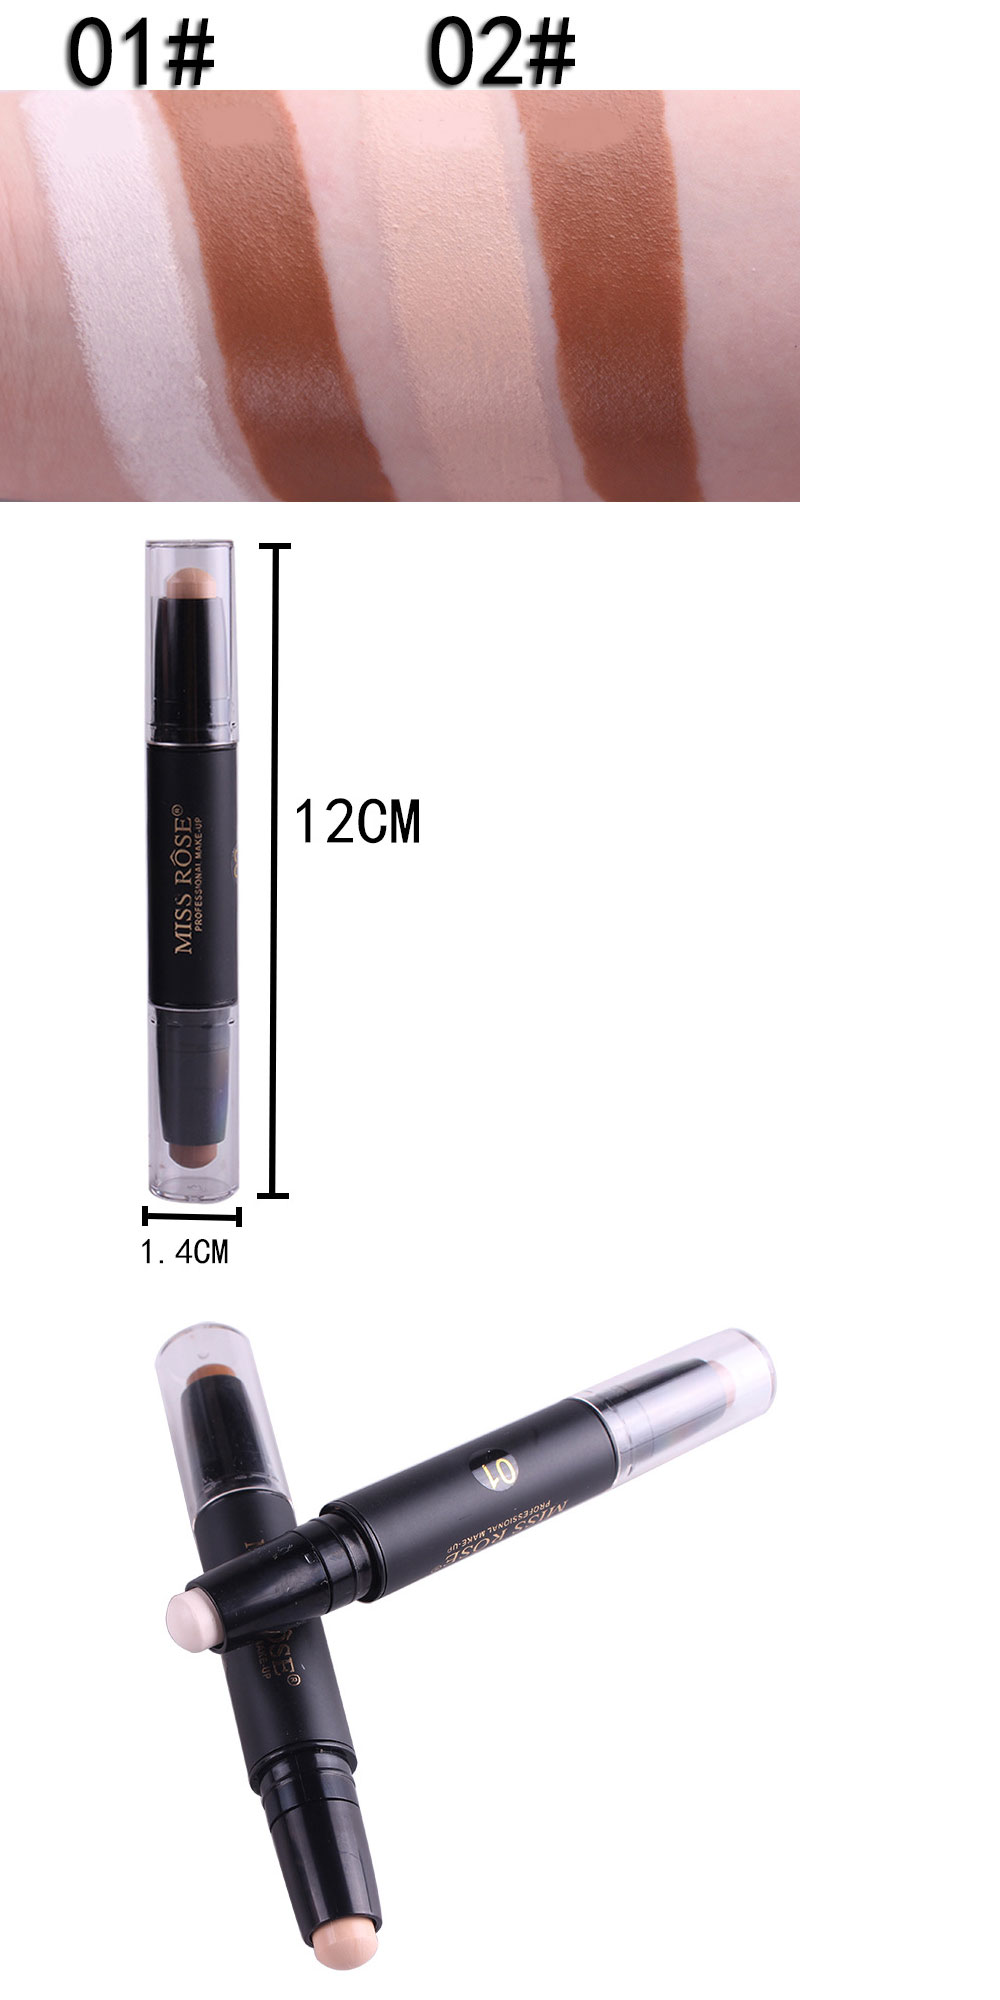 MISS ROSE Professional Facial Makeup Double Tip Concealer Pen